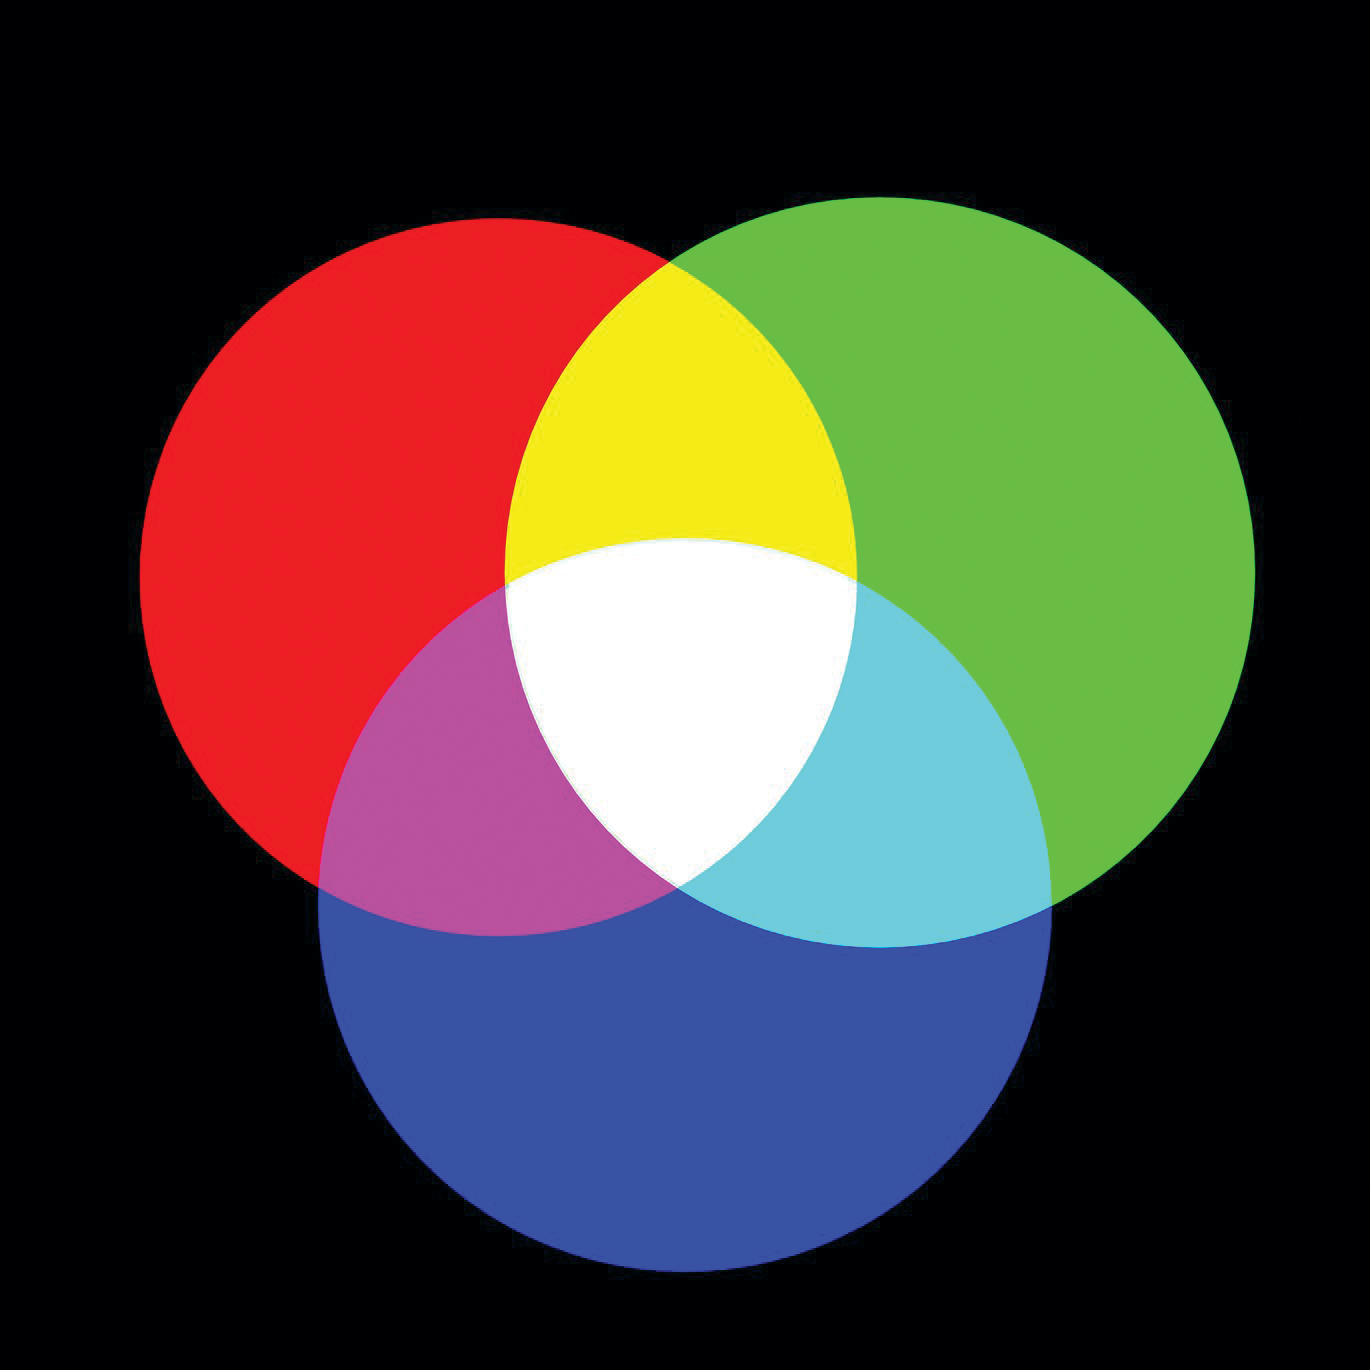 Blue green and red are primary colors in an additive color system.